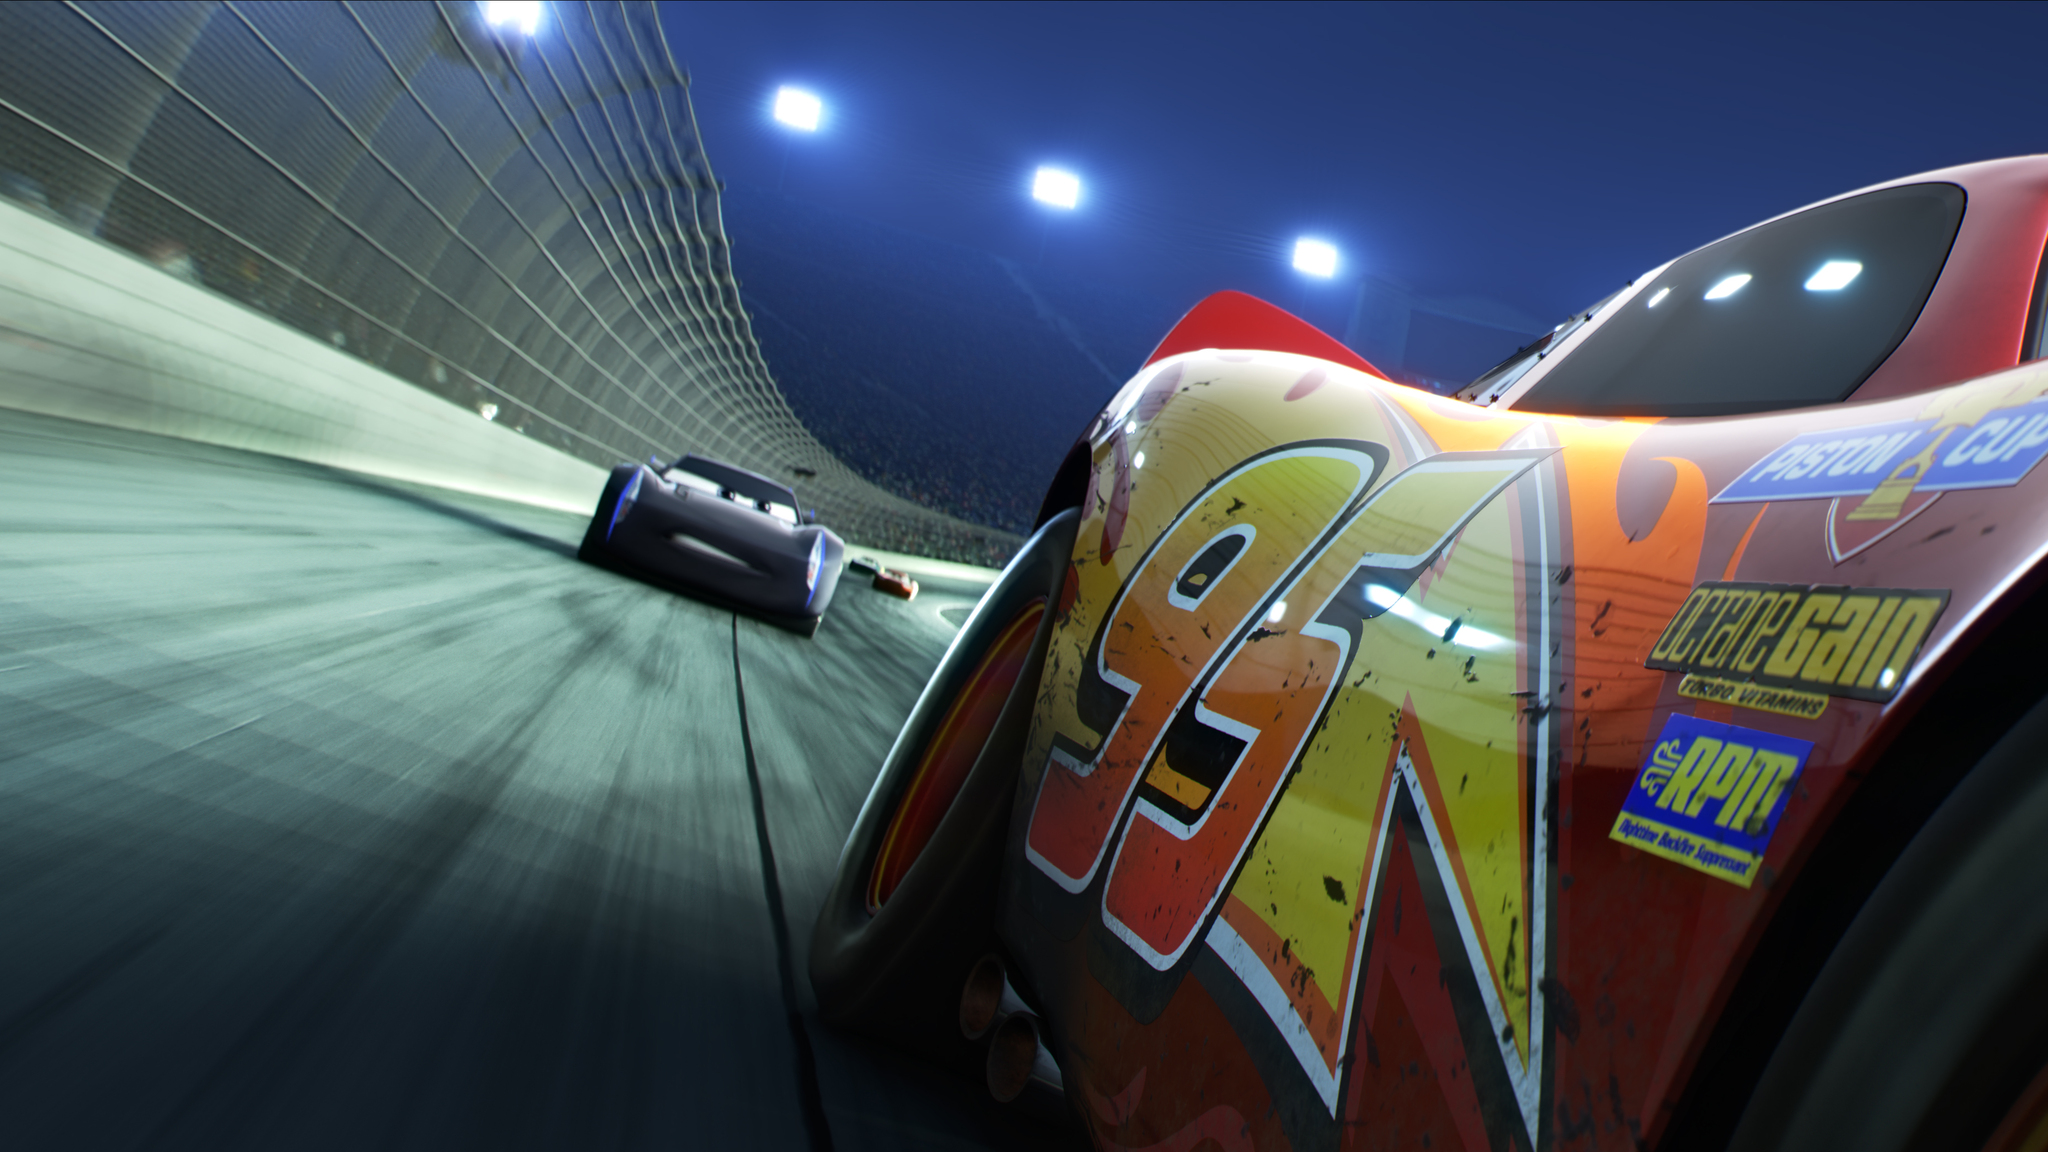 Most Inspiring Wallpaper Movie The Cars - cars-3-disney-movie-5k-new-2048x1152  Collection_65117.jpg